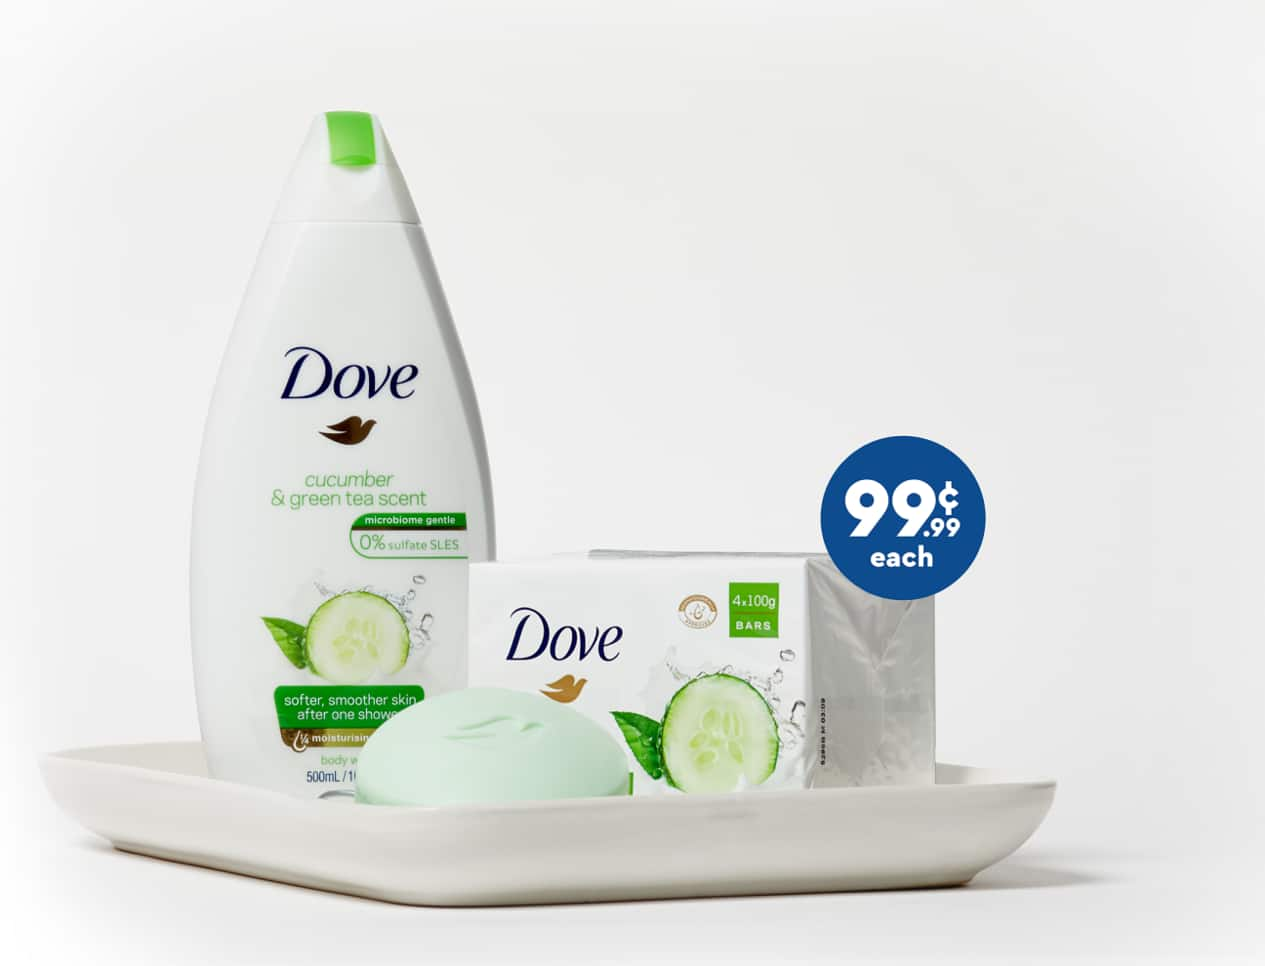 today only: Dove body wash $1 at 99c store